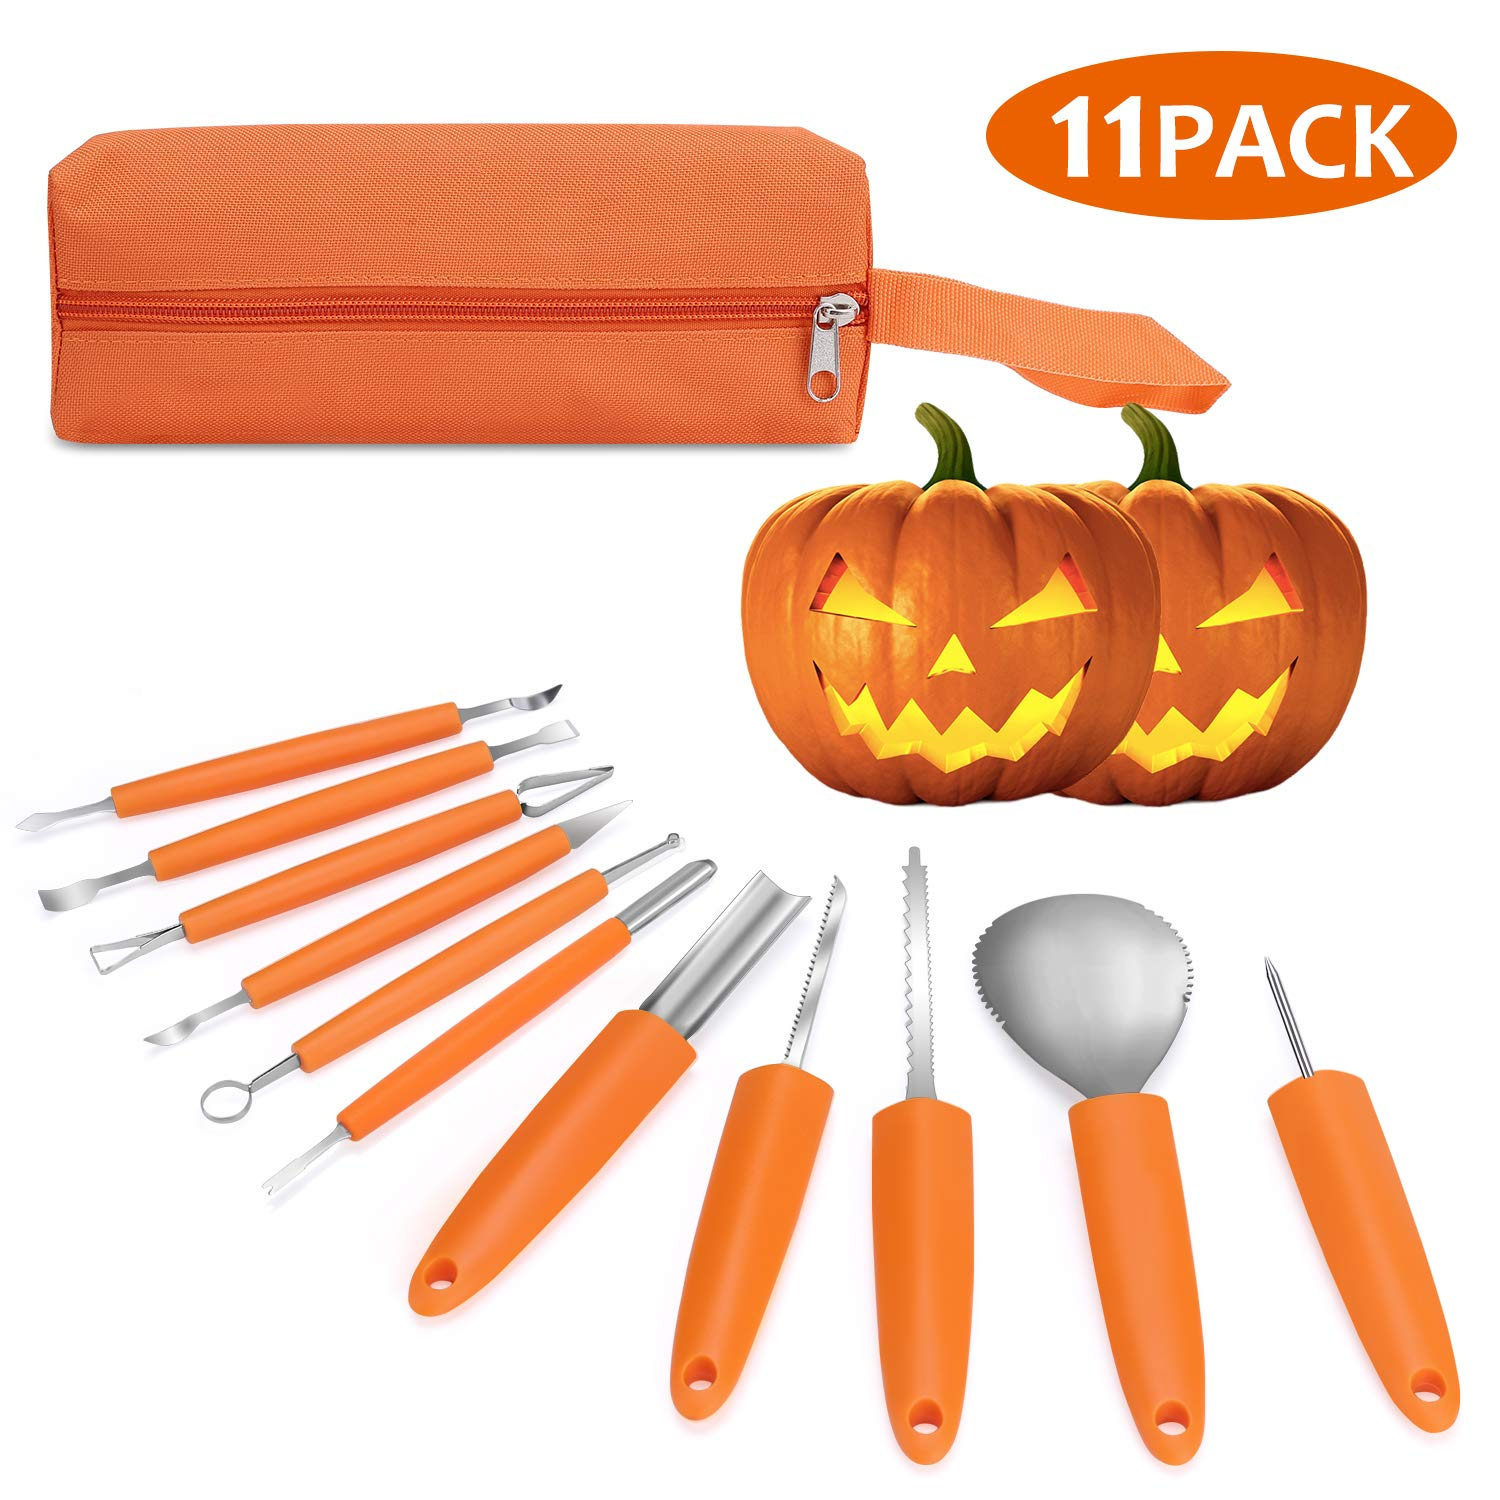 Veperain Halloween Pumpkin Carving Kit, 11 Pieces Professional Stainless Steel Pumpkin Carving Tools for Halloween,Carve Sculpt Jack-O-Lanterns Halloween Decorations DIY with a Storage Carrying Case by Veperain